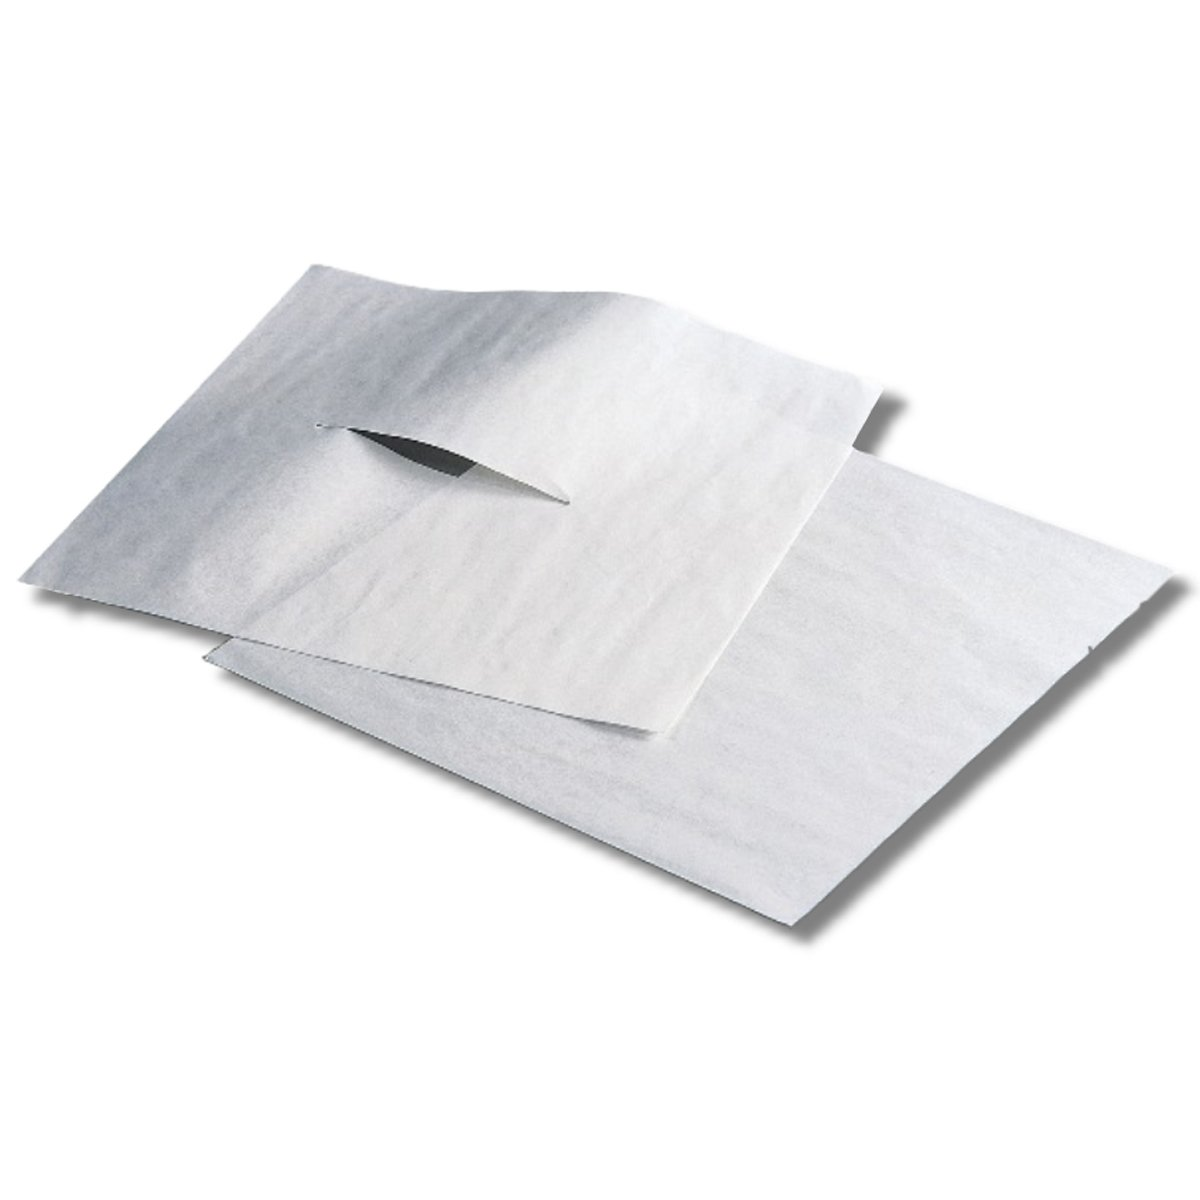 Humactive Massage and Chiropractic Table Headrest Tissue Sheets With Face Slit - 12 x 12 Inch, 1000 Sheets